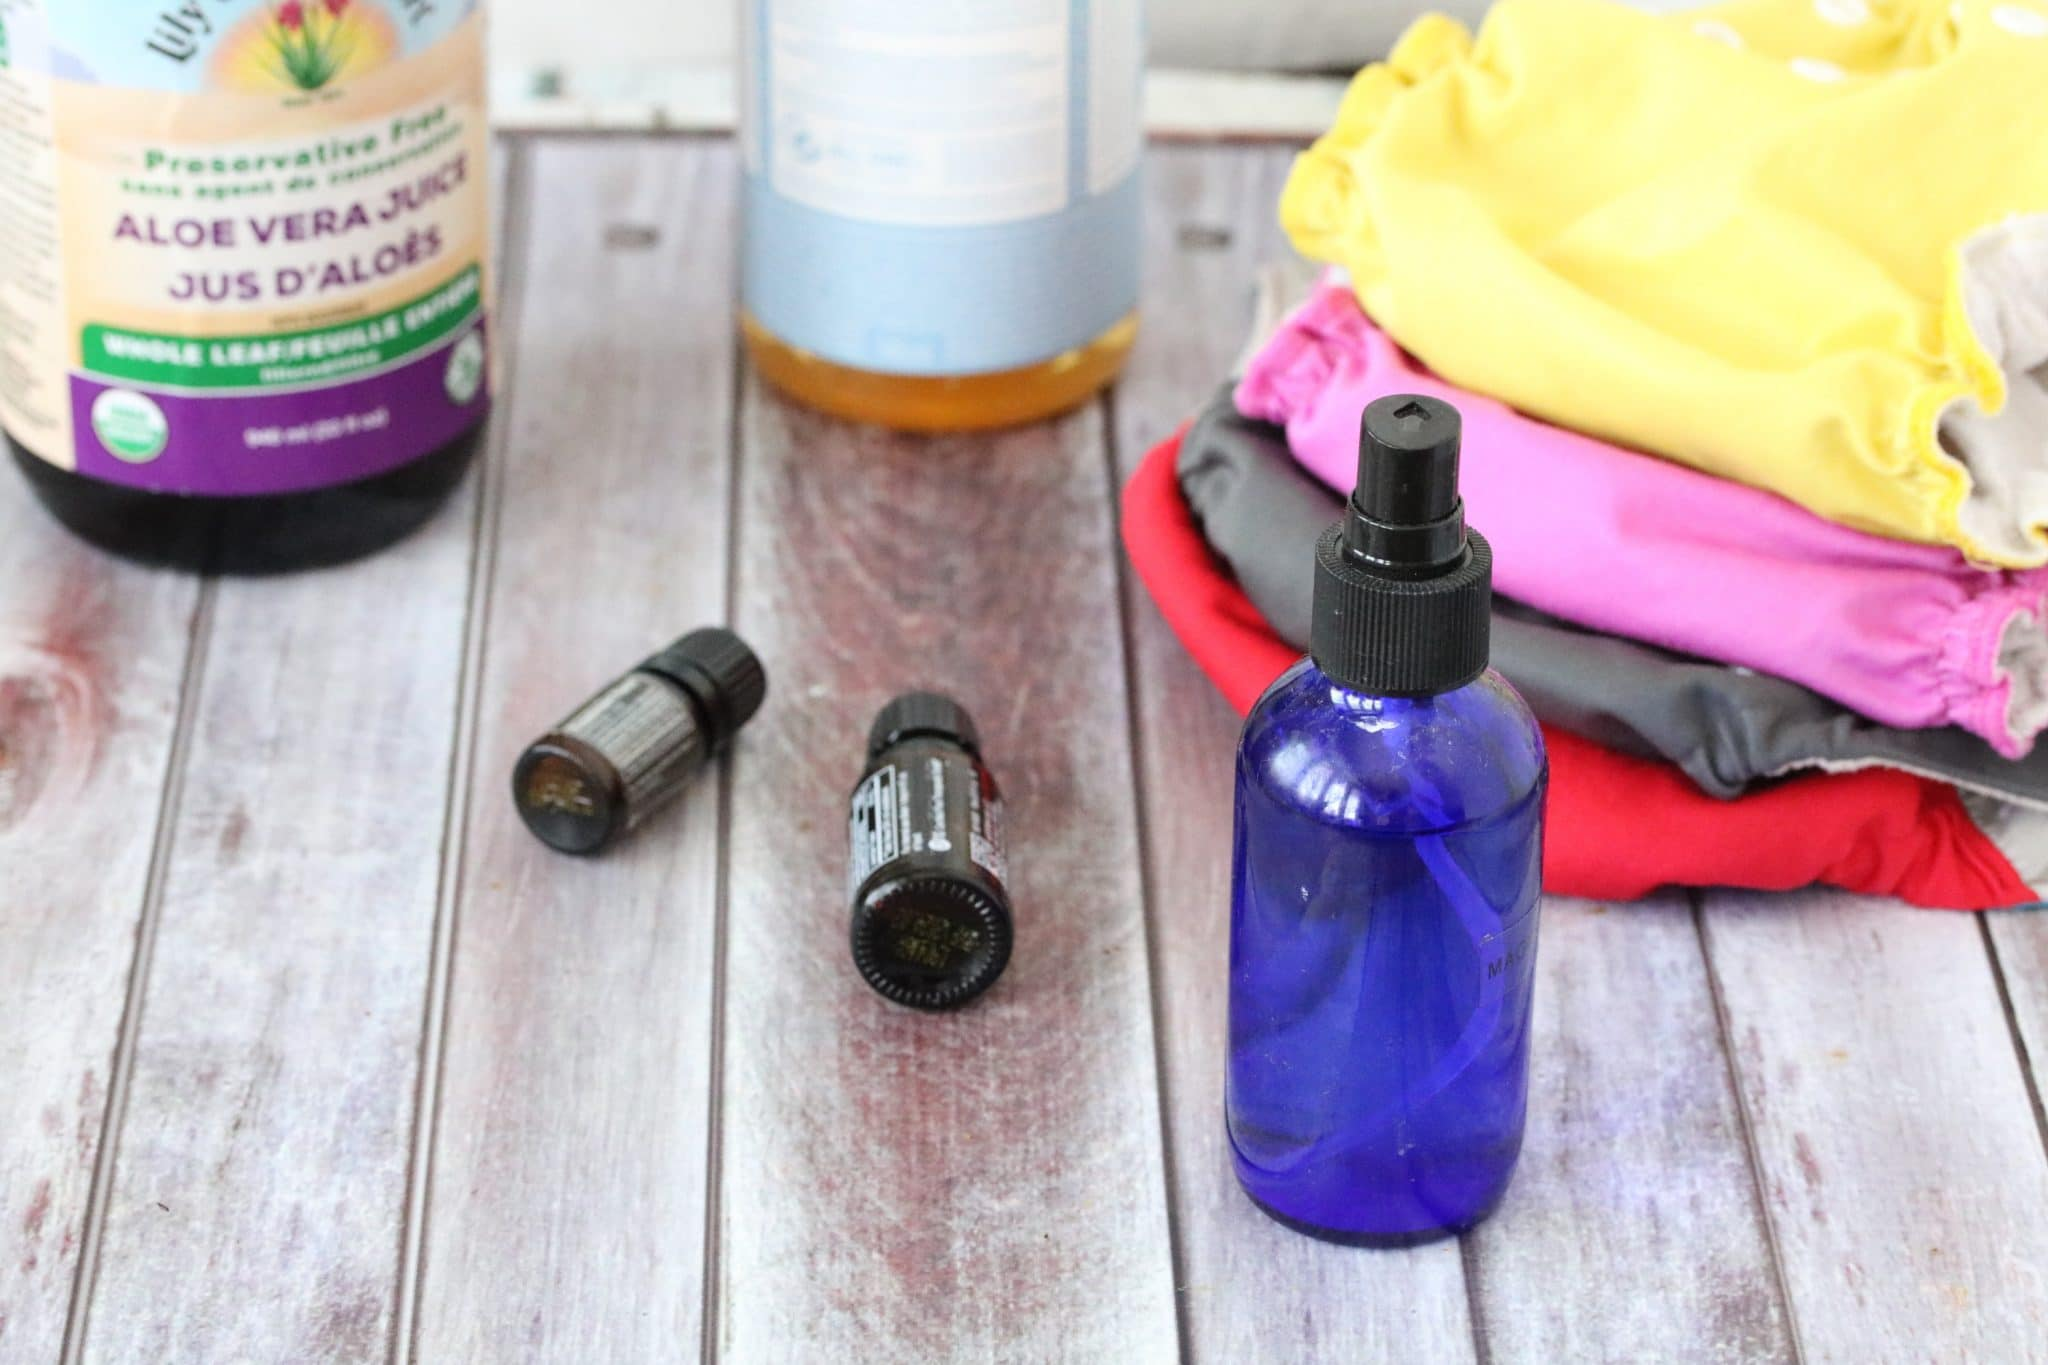 a cobalt blue bottle surrounded by ingredients like essential oils and aloe as well as cloth diapers